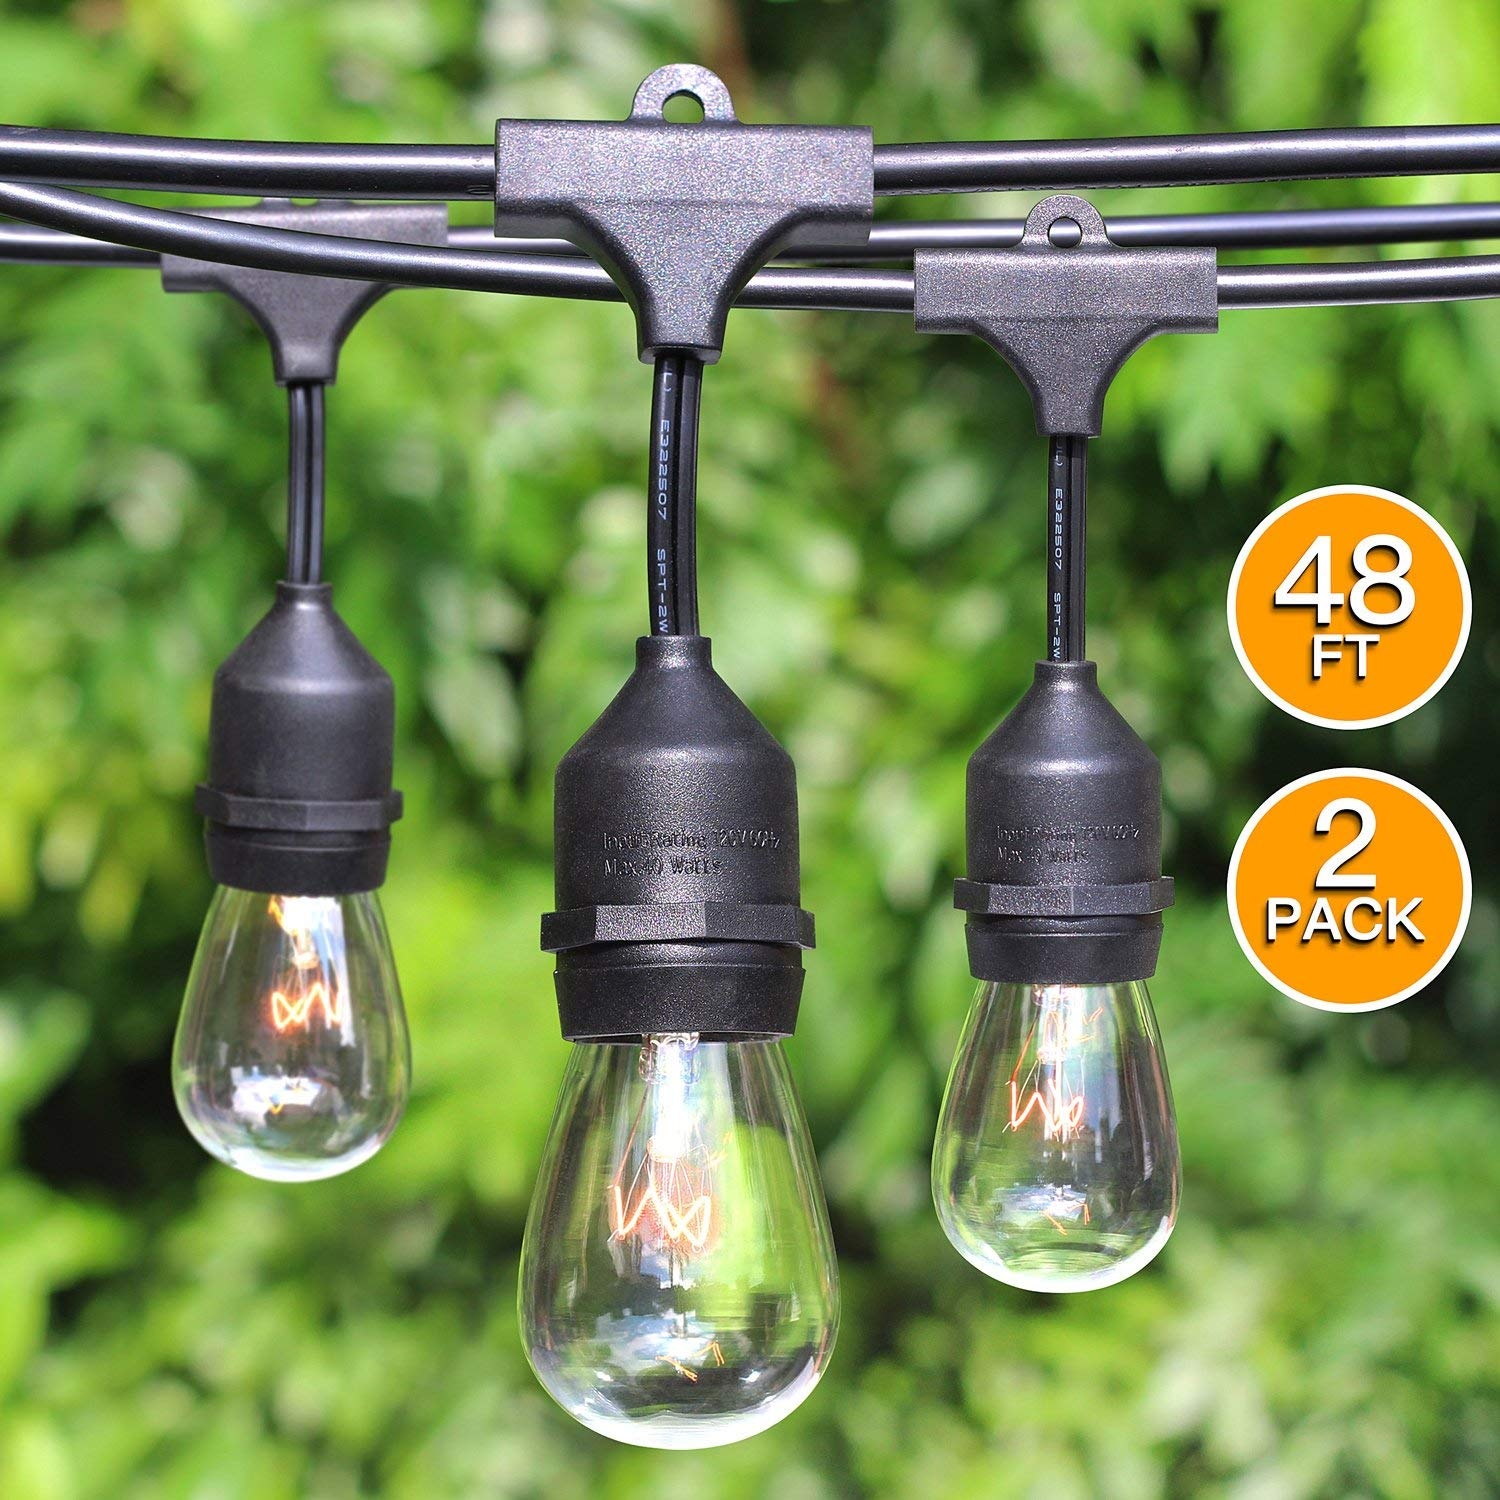 Top 10 Best Outdoor String Lights for Home Decor - Buyer's ...